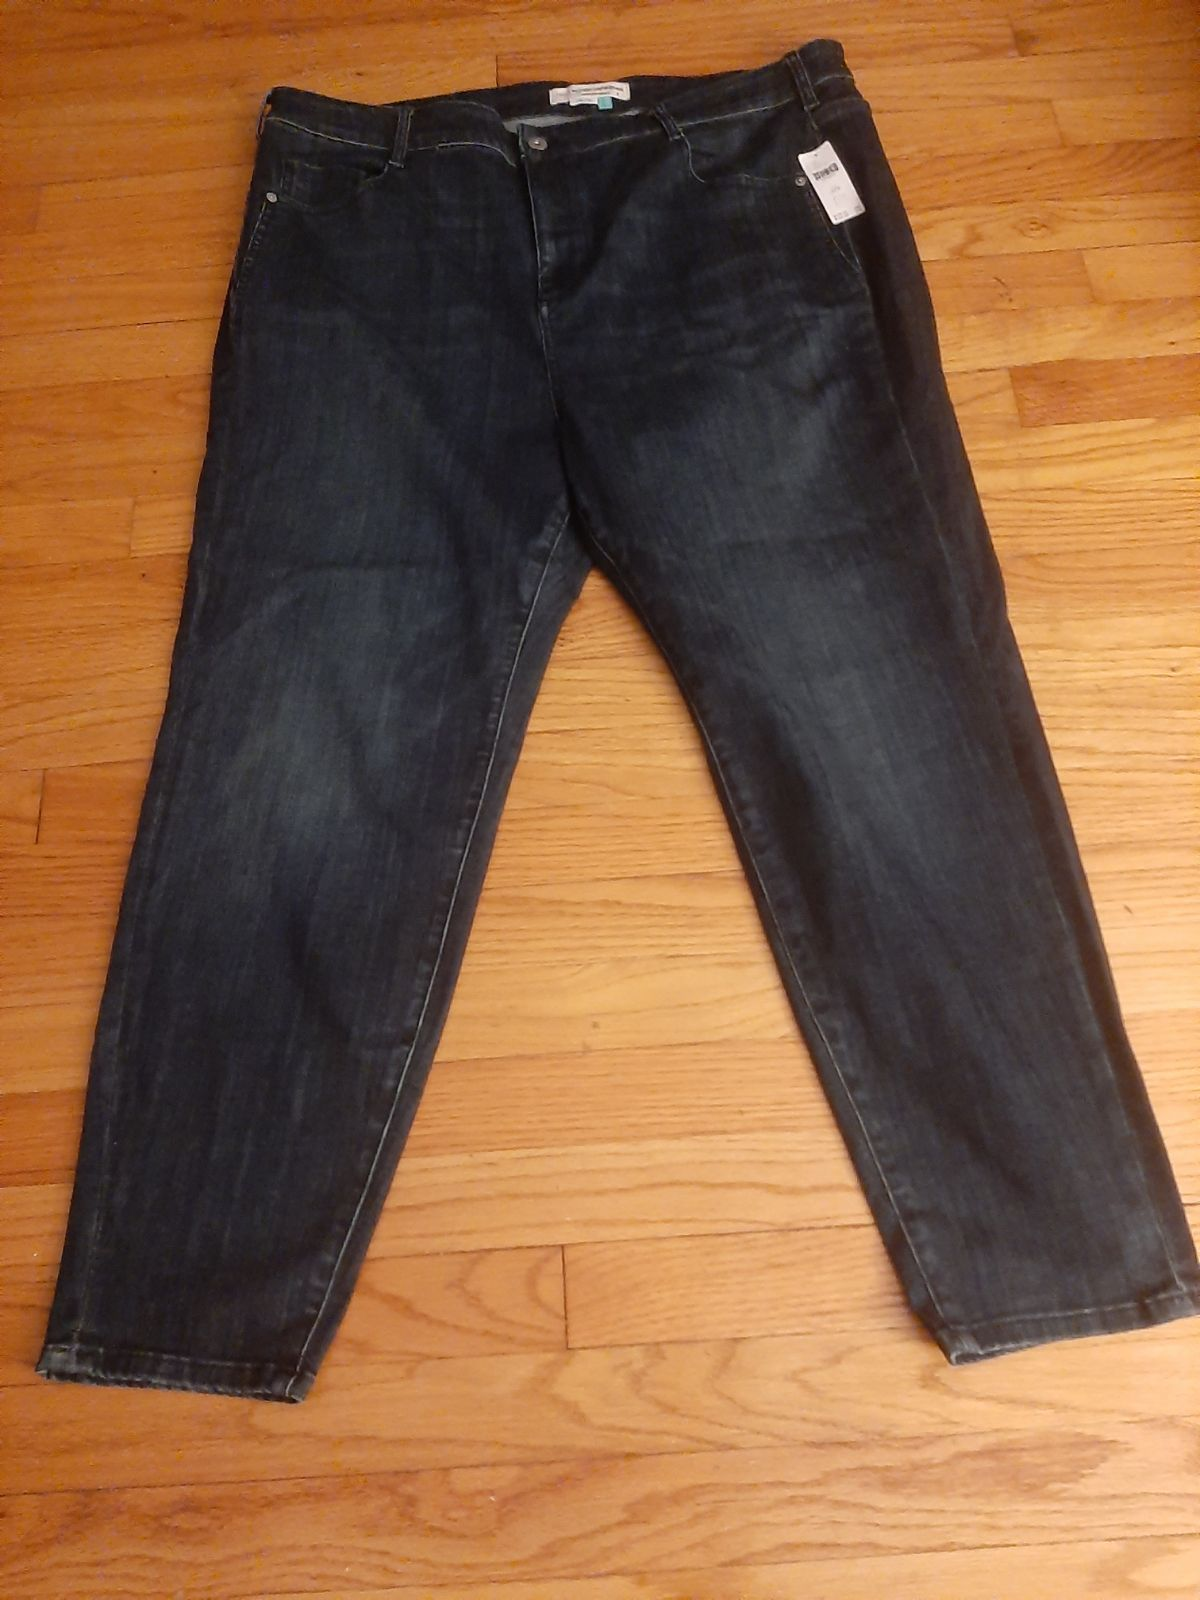 Anthropologie High waisted jeans size 22